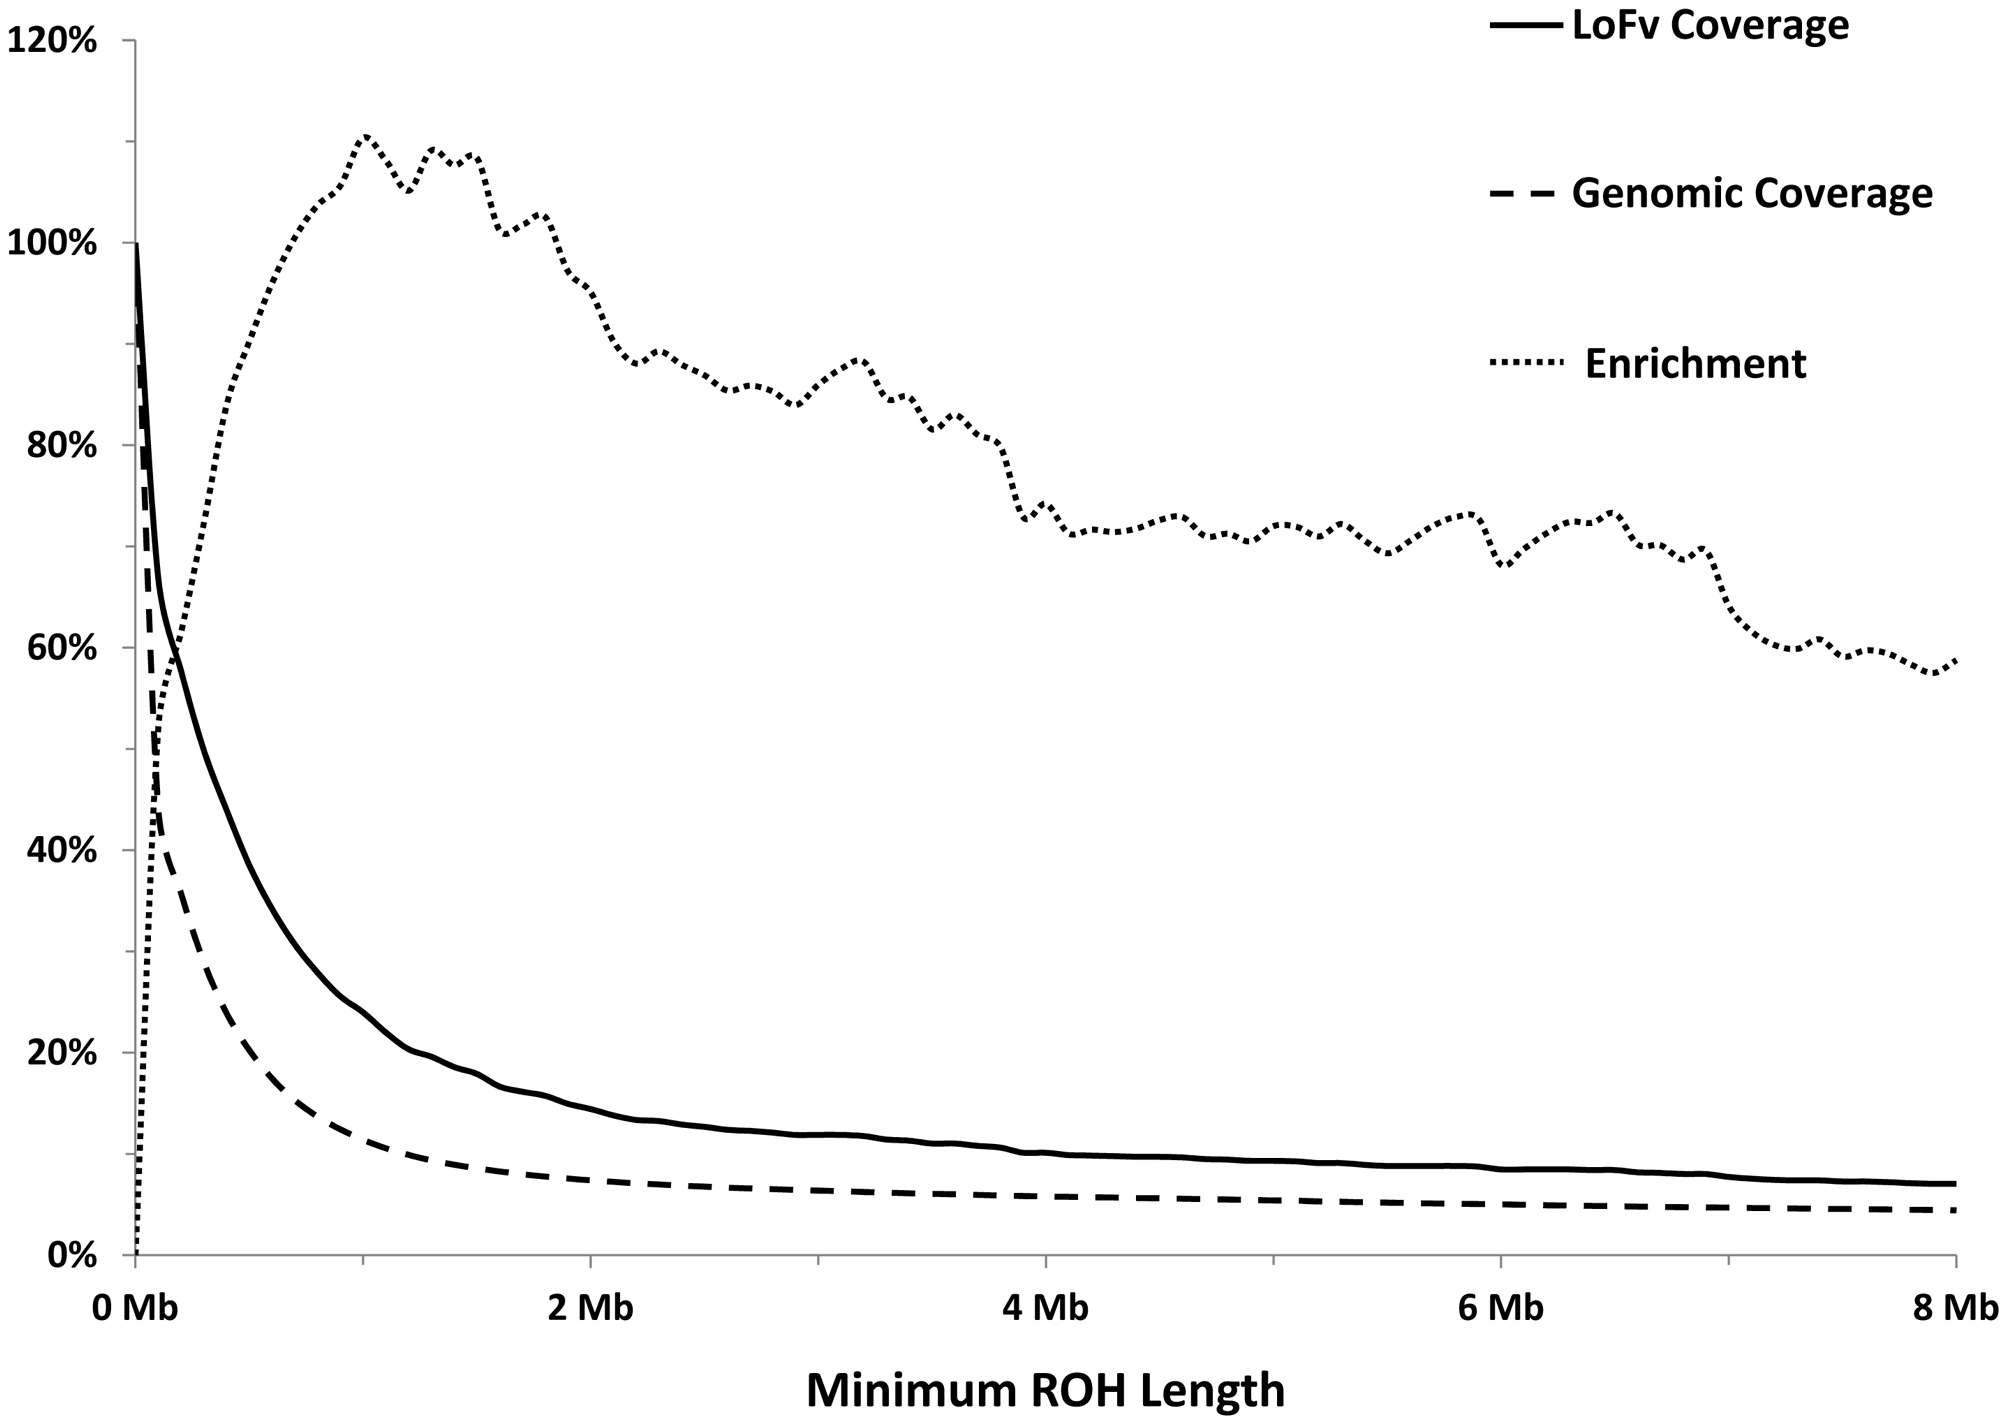 Longer ROHs are more enriched for homozygous LoFs.